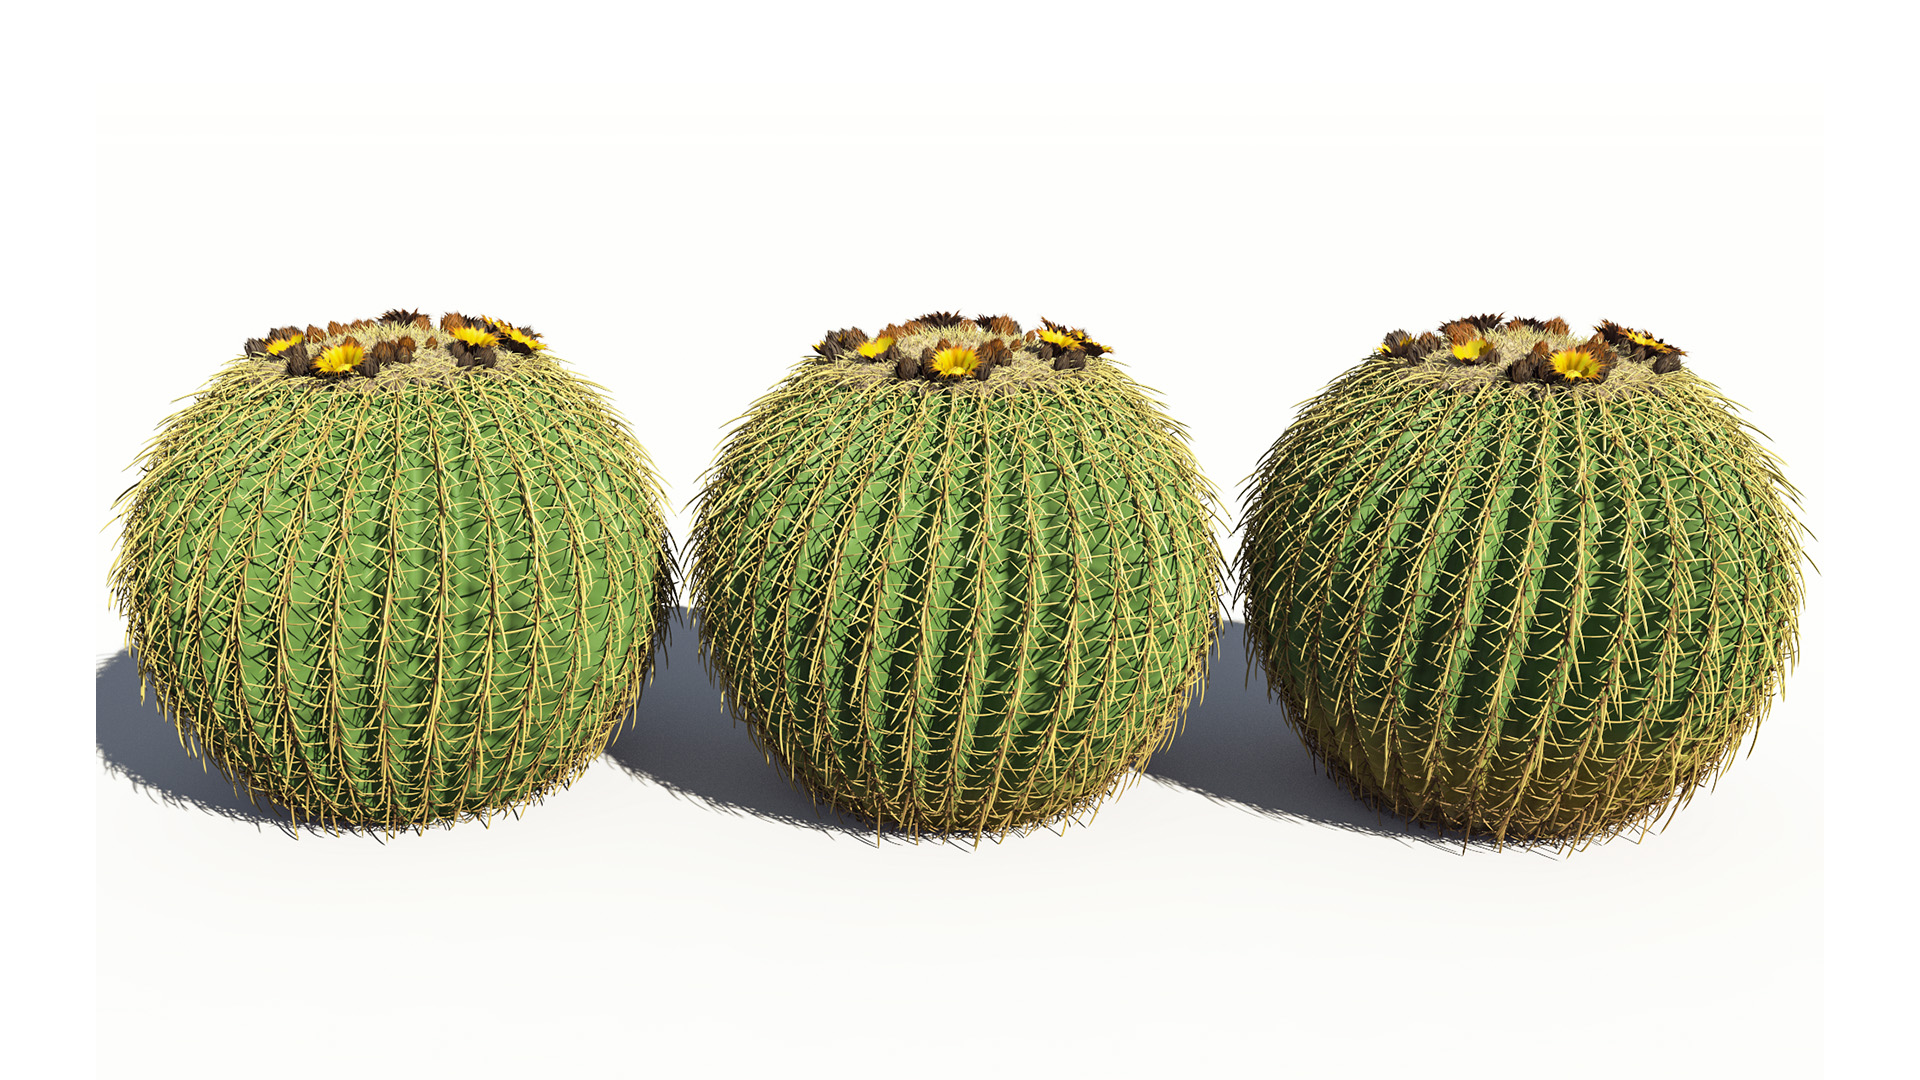 3D model of the Golden barrel cactus Echinocactus grusonii health variations